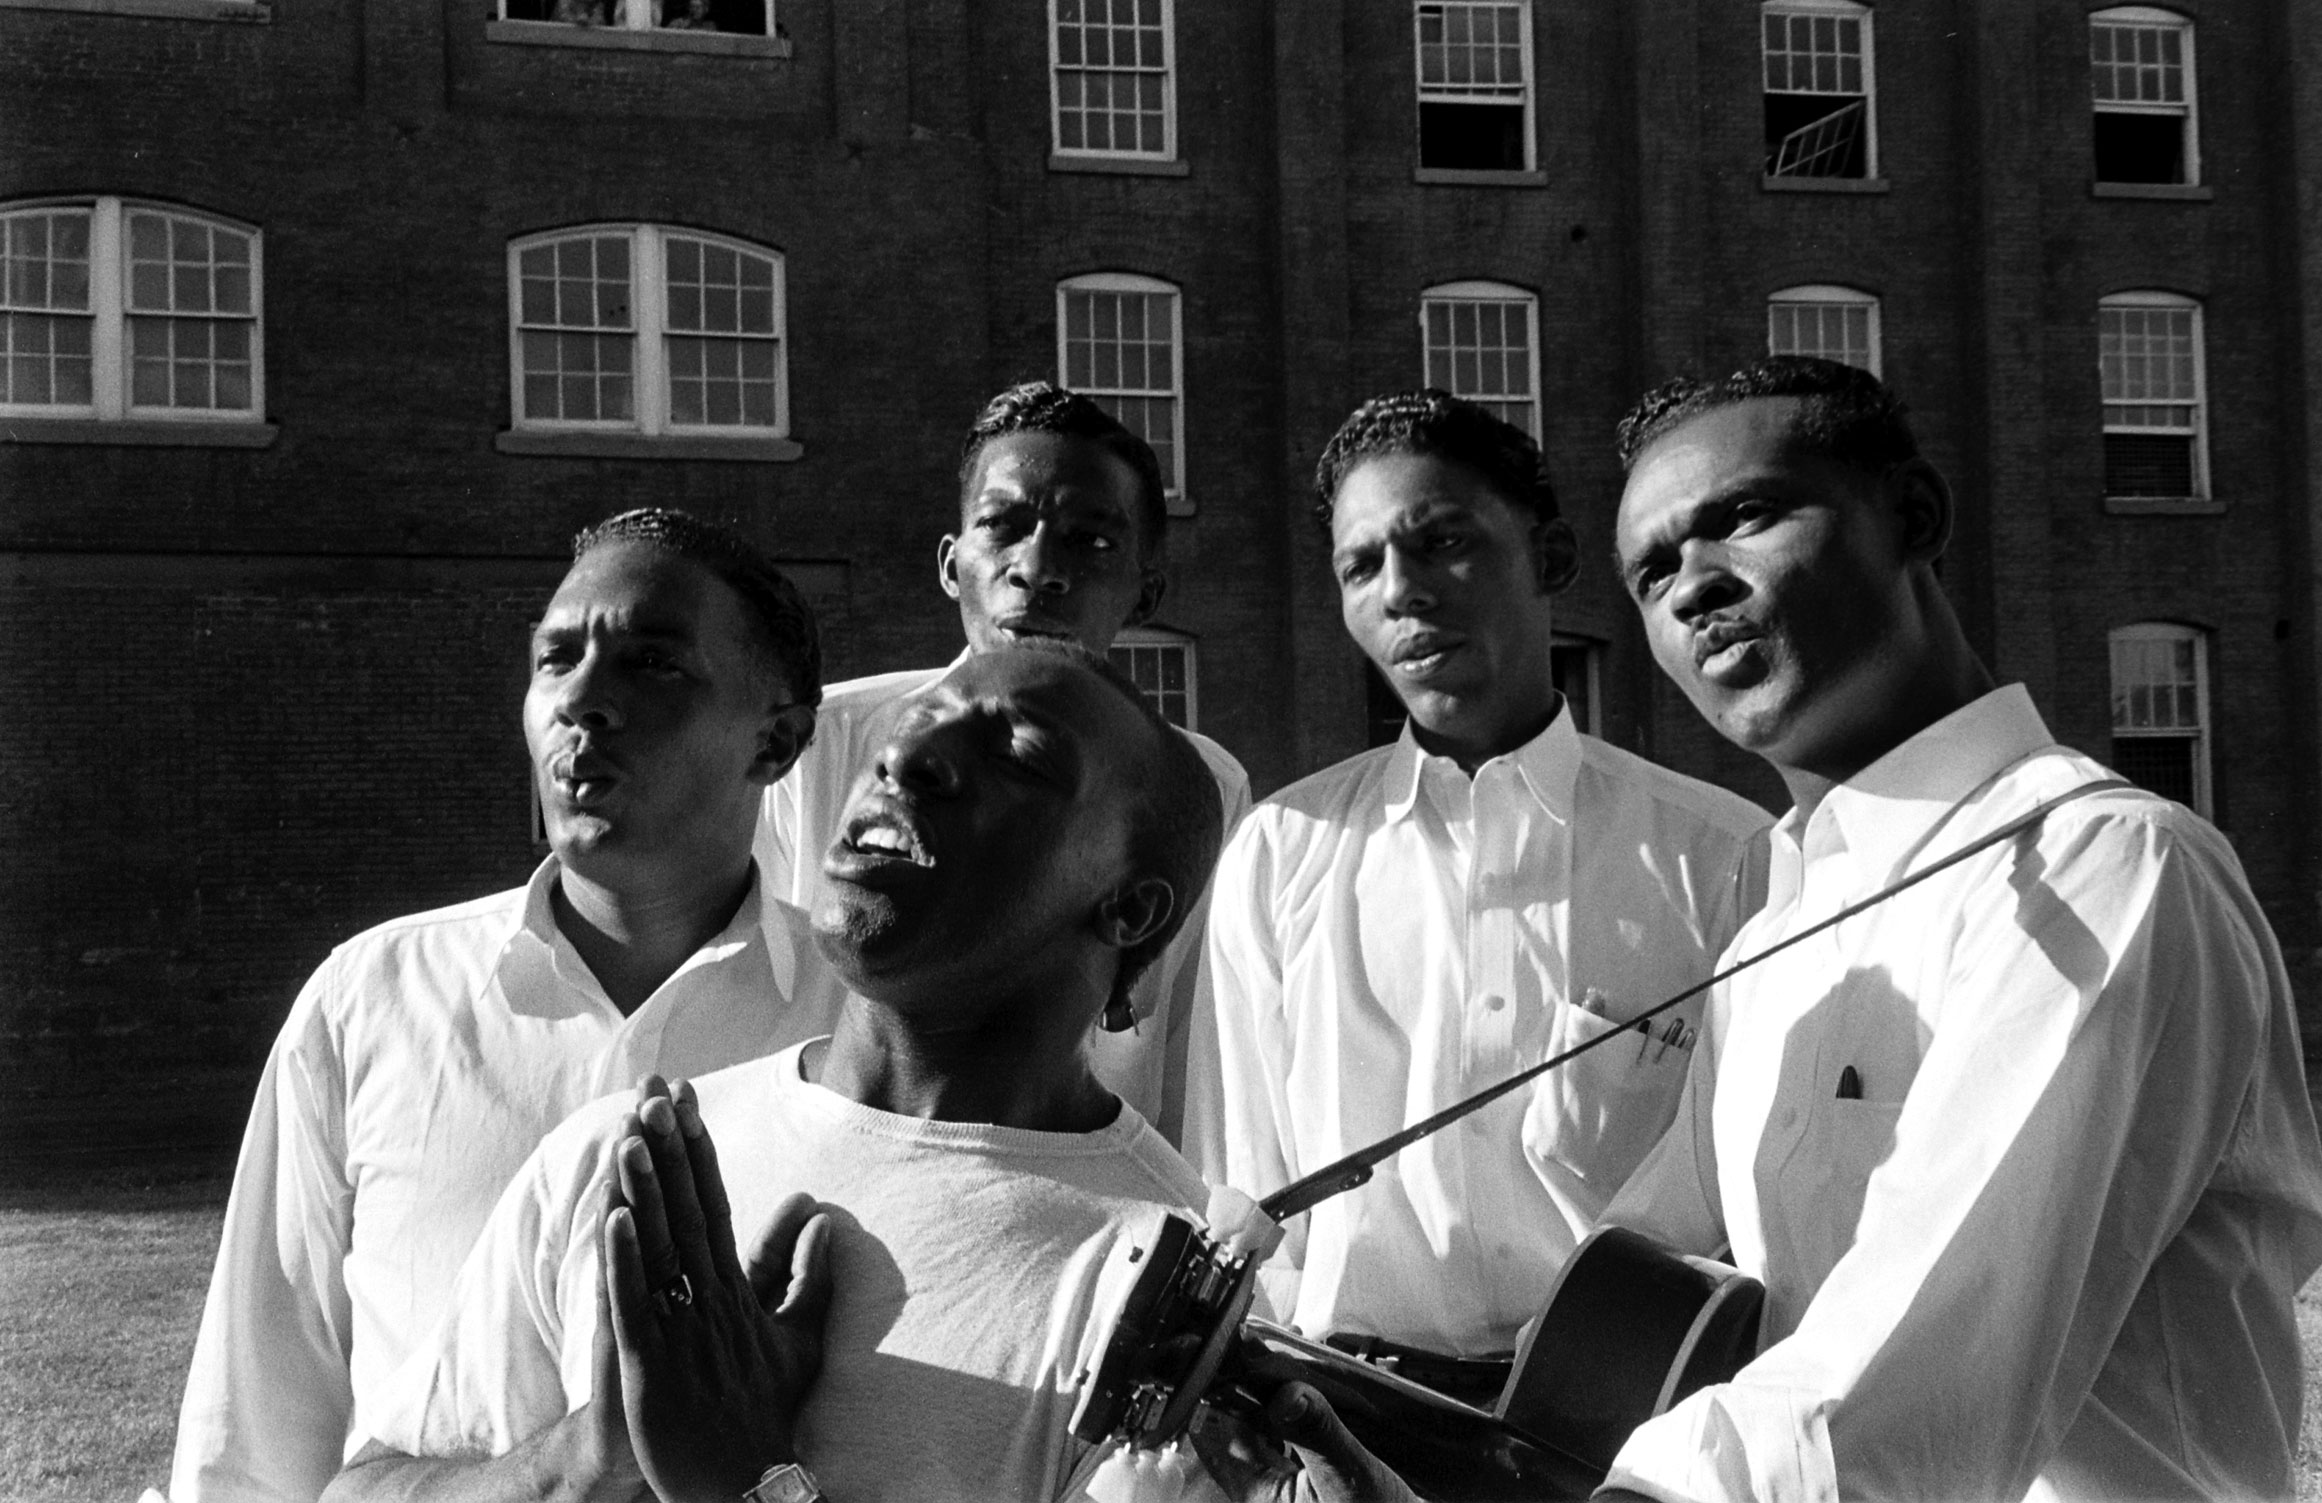 Members of the incarcerated musical group the Prisonaires, Tennessee, 1953.